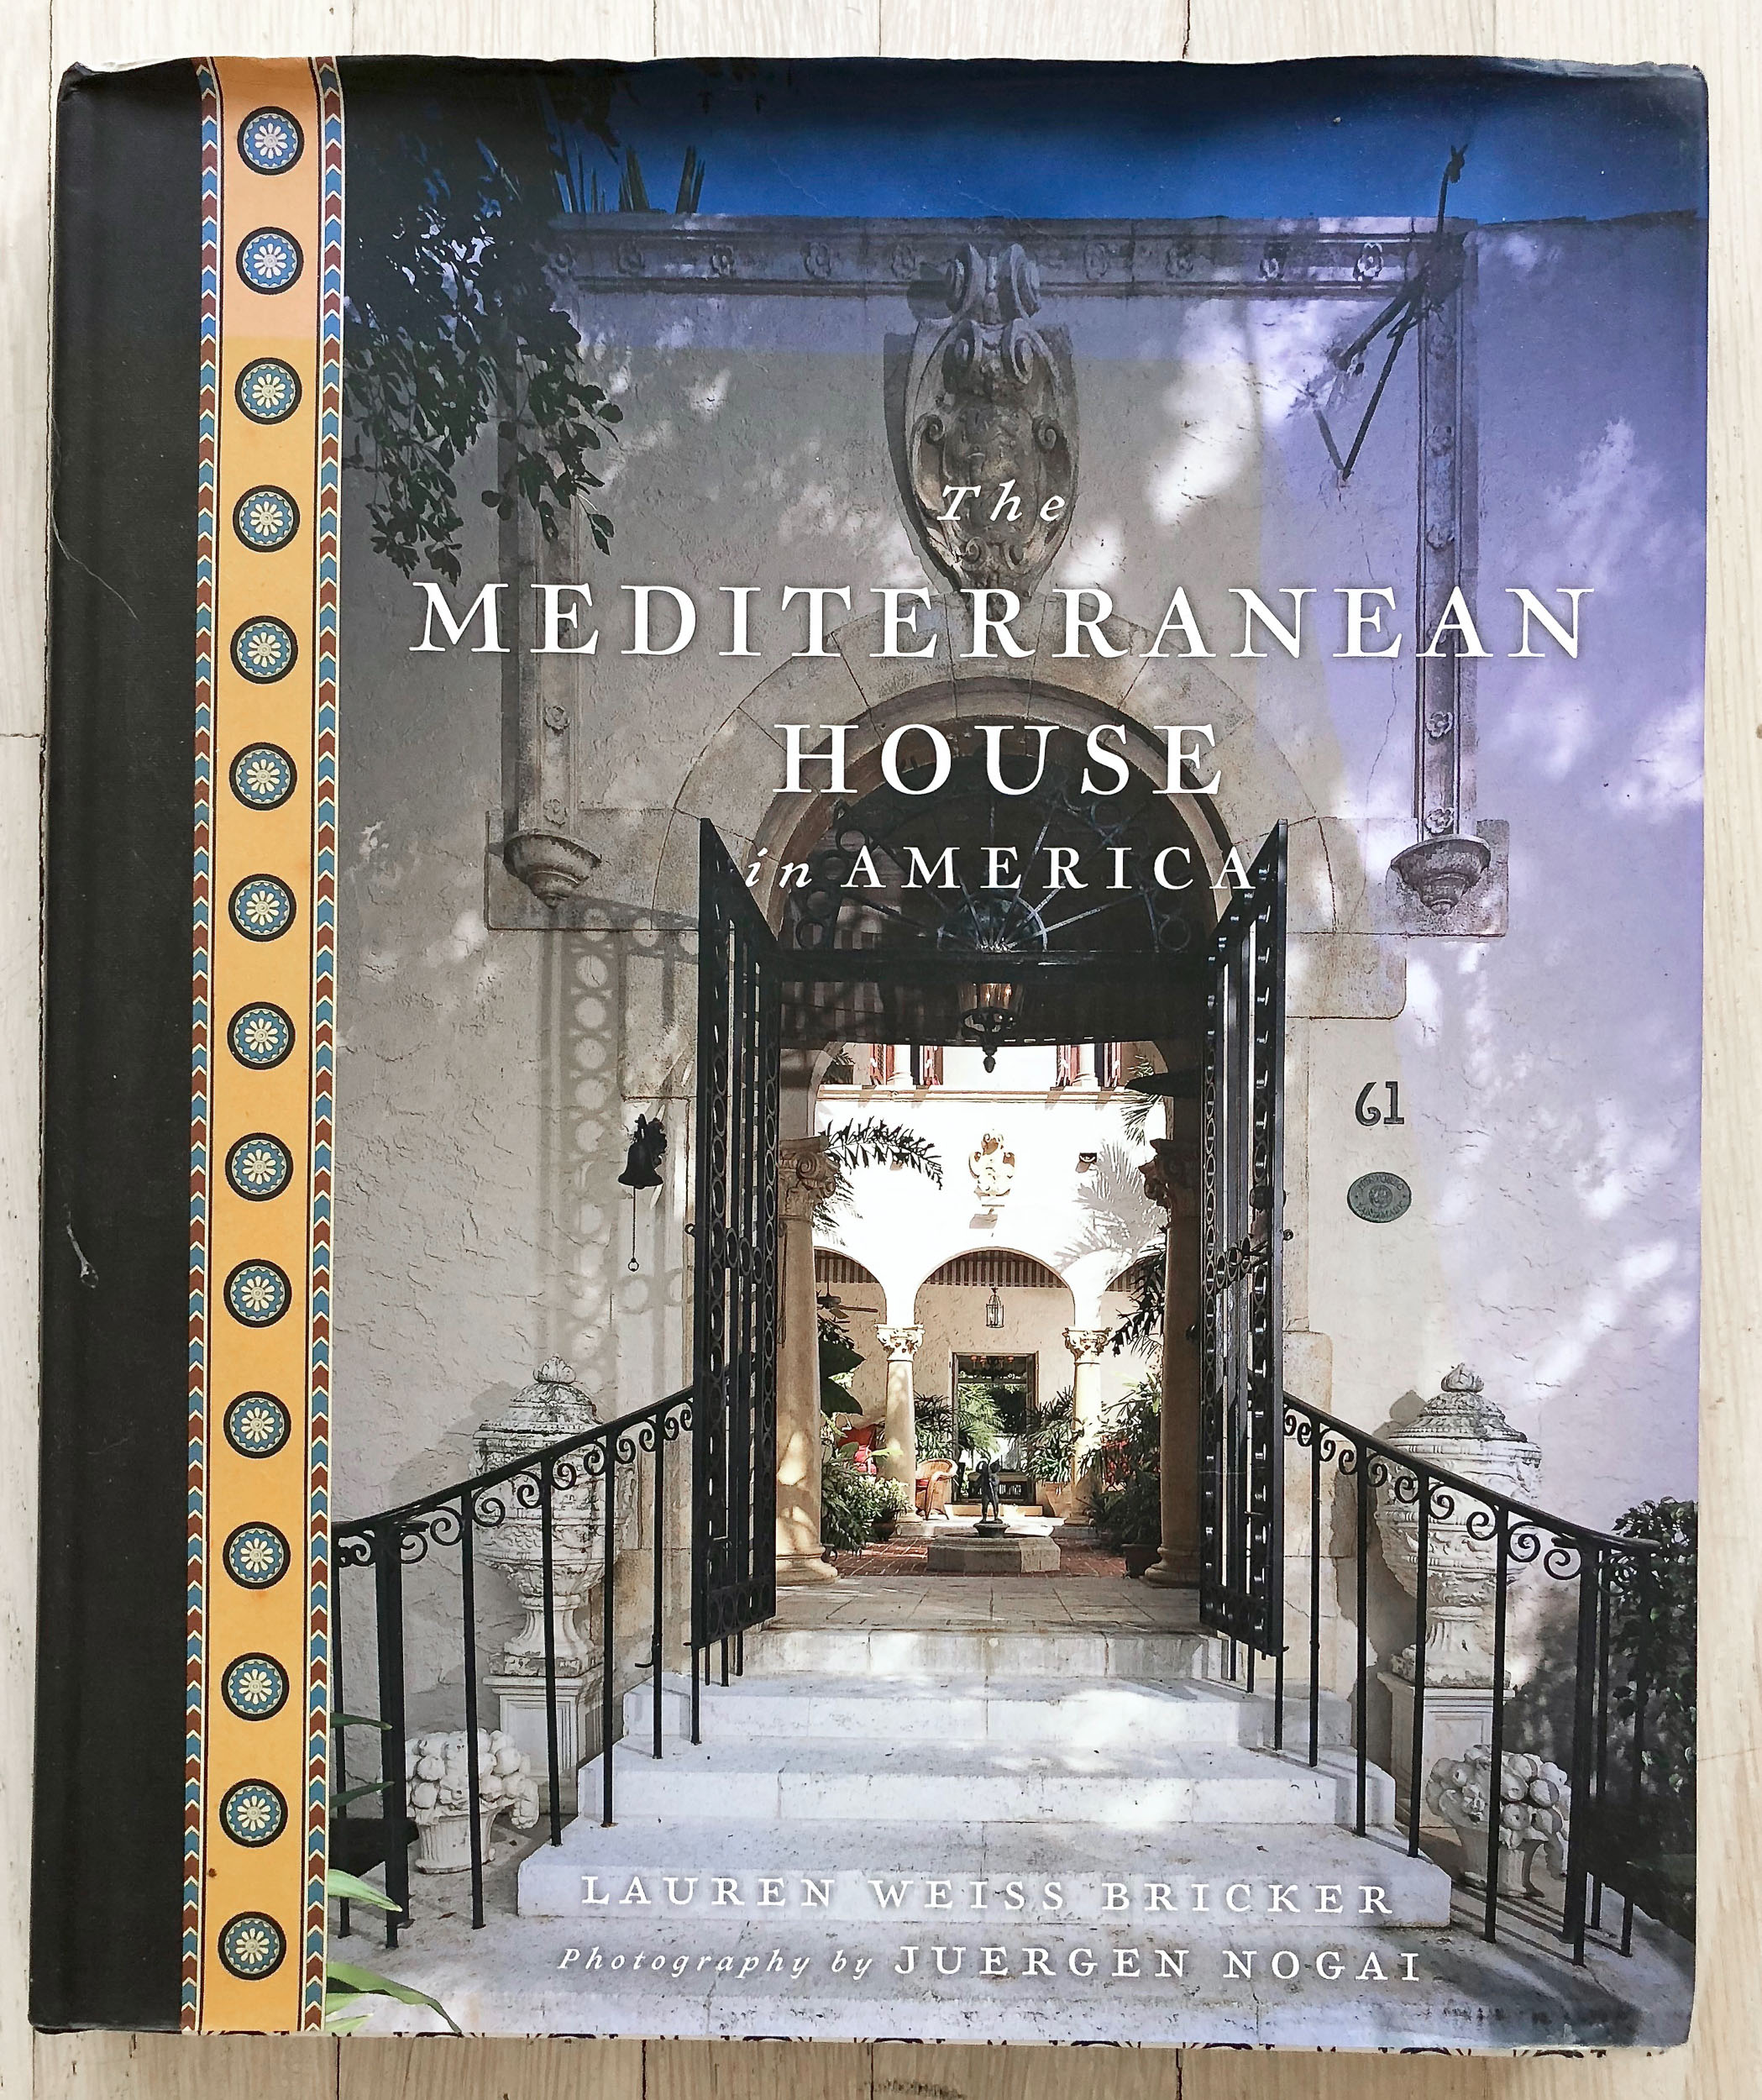 The Mediterranean House in America  by Lauren Weiss Bricker. Developed and Acquired by Richard Olsen. Edited by Nancy E. Cohen. Michelle Ishay, Art Director. Laura Klynstra, Graphic Design. Alison Gervais, Production Manager. Harry N. Abrams, Inc., Publishers.